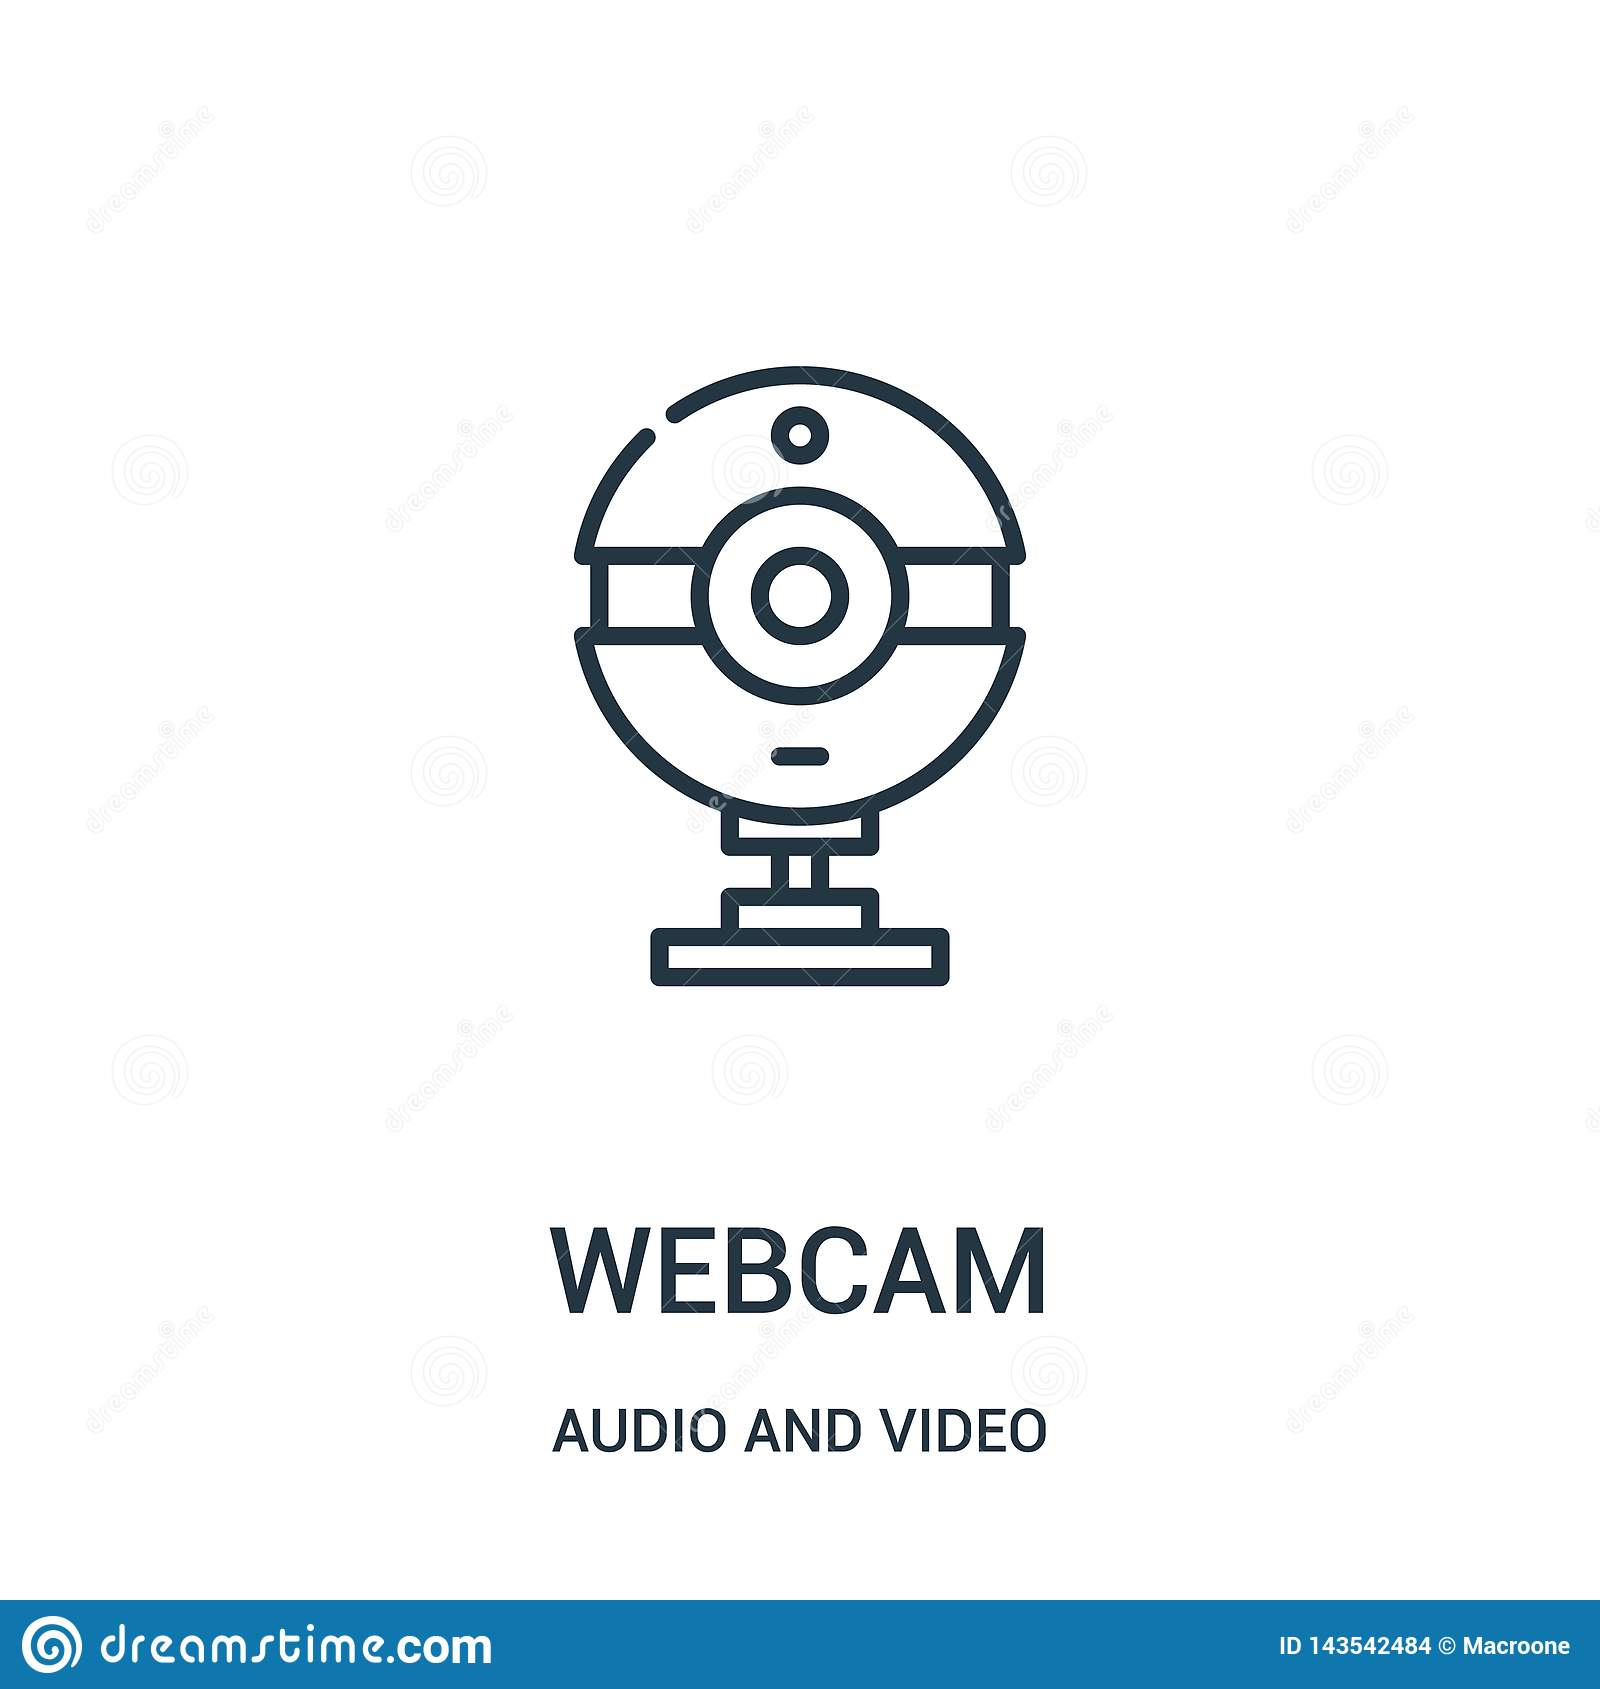 webcam icon vector from audio and video collection. Thin line webcam outline icon vector illustration